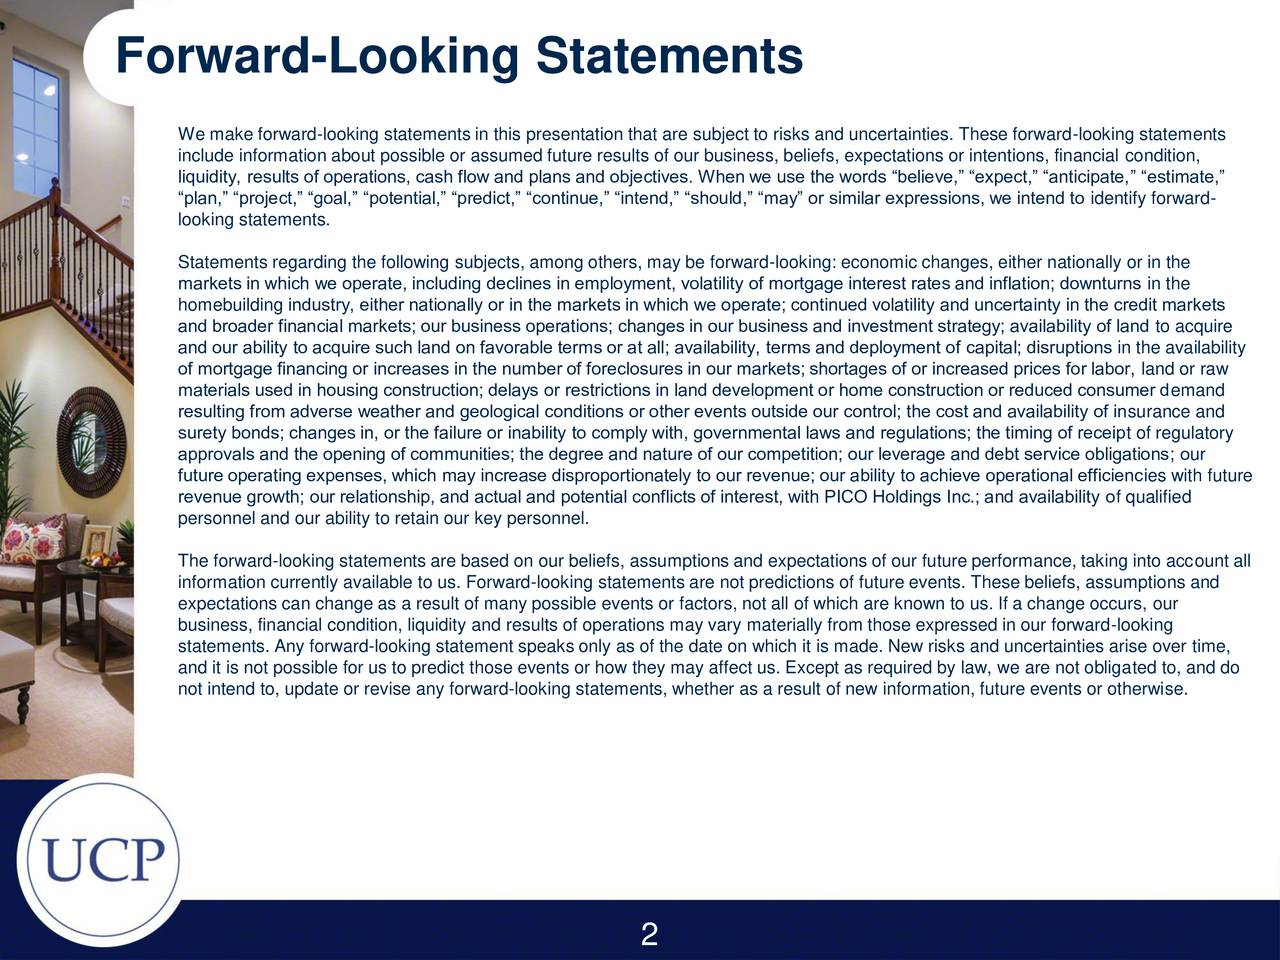 We make forward-looking statements in this presentation that are subject to risks and uncertainties. These forward-looking statements include information about possible or assumed future results of our business, beliefs, expectations or intentions, financial condition, liquidity, results of operations, cash flow and plans and objectives. When we use the words believe, expect, anticipate, estimate, plan, project, goal, potential, predict, continue, intend, should, may or similar expressions, we intend to identify forward- looking statements. Statements regarding the following subjects, among others, may be forward-looking: economic changes, either nationally or in the markets in which we operate, including declines in employment, volatility of mortgage interest rates and inflation downturns in the homebuilding industry, either nationally or in the markets in which we operate continued volatility and uncertainty in the credit markets and broader financial markets our business operations changes in our business and investment strategy availability of land to acquire and our ability to acquire such land on favorable terms or at all availability, terms and deployment of capital disruptions in the availability of mortgage financing or increases in the number of foreclosures in our markets shortages of or increased prices for labor, land or raw materials used in housing construction delays or restrictions in land development or home construction or reduced consumer demand resulting from adverse weather and geological conditions or other events outside our control the cost and availability of insurance and surety bonds changes in, or the failure or inability to comply with, governmental laws and regulations the timing of receipt of regulatory approvals and the opening of communities the degree and nature of our competition our leverage and debt service obligations our future operating expenses, which may increase disproportionately to our revenue our ability to achieve operational efficiencies with future revenue growth our relationship, and actual and potential conflicts of interest, with PICO Holdings Inc. and availability of qualified personnel and our ability to retain our key personnel. The forward-looking statements are based on our beliefs, assumptions and expectations of our future performance, taking into account all information currently available to us. Forward-looking statements are not predictions of future events. These beliefs, assumptions and expectations can change as a result of many possible events or factors, not all of which are known to us. If a change occurs, our business, financial condition, liquidity and results of operations may vary materially from those expressed in our forward-looking statements. Any forward-looking statement speaks only as of the date on which it is made. New risks and uncertainties arise over time, and it is not possible for us to predict those events or how they may affect us. Except as required by law, we are not obligated to, and do not intend to, update or revise any forward-looking statements, whether as a result of new information, future events or otherwise. 2 U